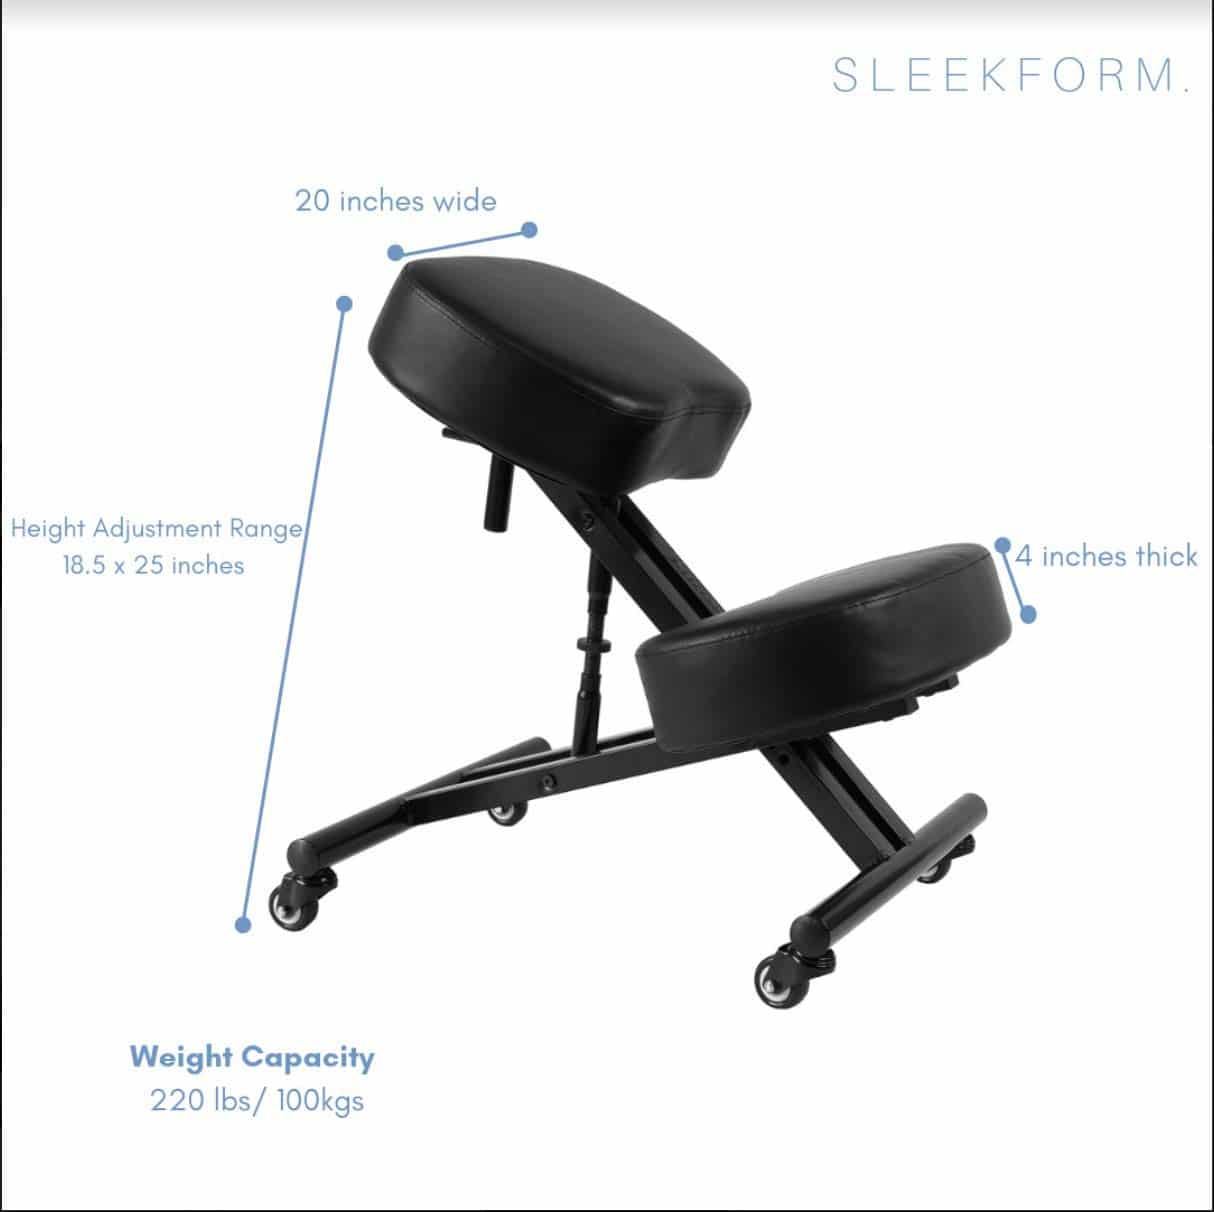 Sleekform Alpharetta Adjustable Kneeling Chair